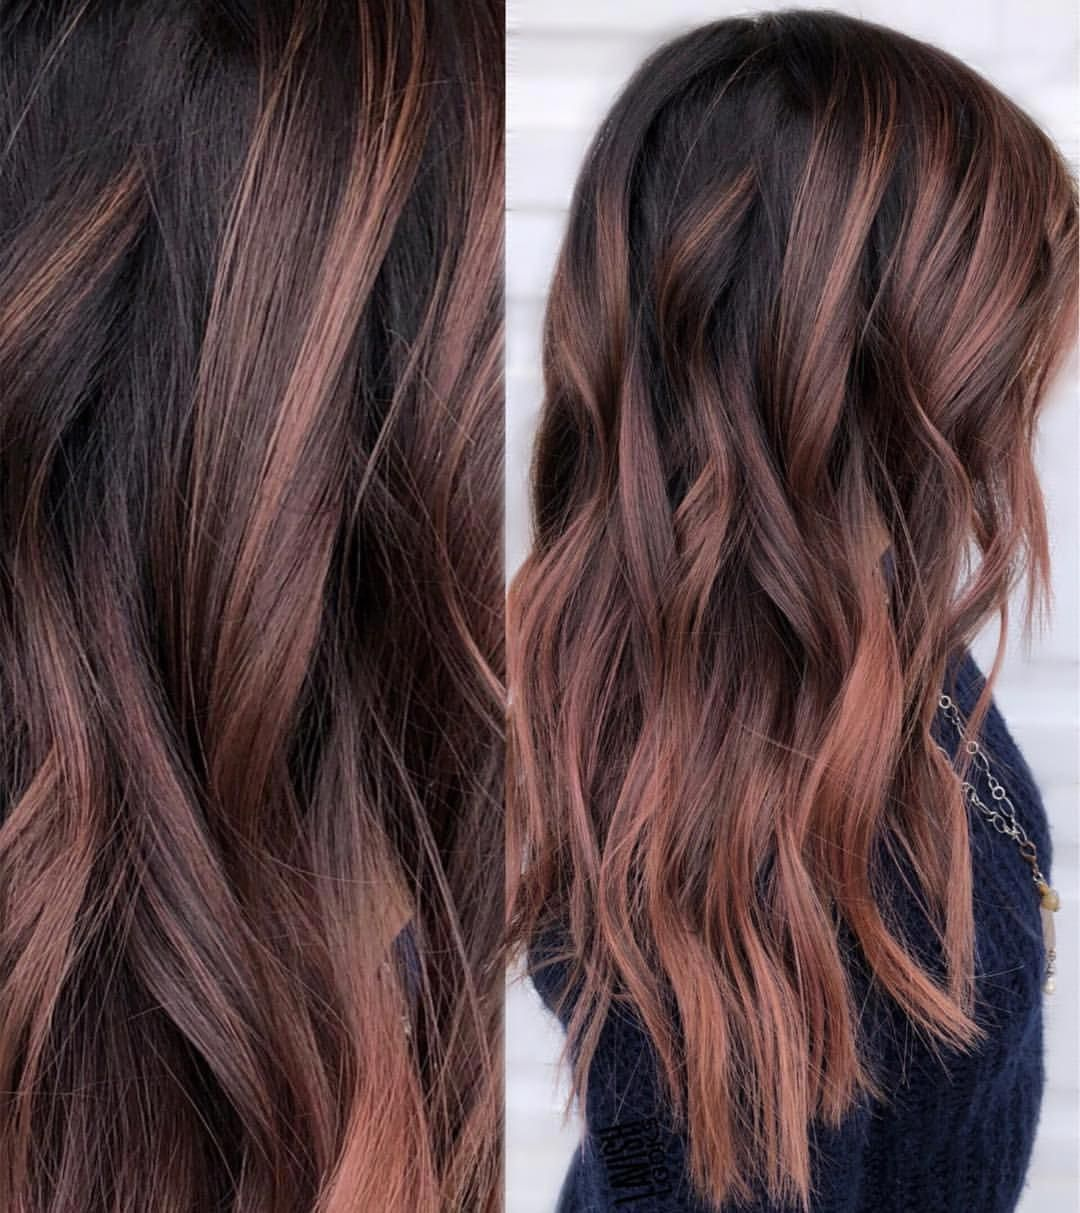 New Totally Free Rose Gold Hair brunette Style If you have ever considered the wild hair coloring trends upon your public media channels nourish th #brunette #Free #Gold #Hair #Rose #Style #Totally #winterhaircolor #fallhaircolorforbrunettes